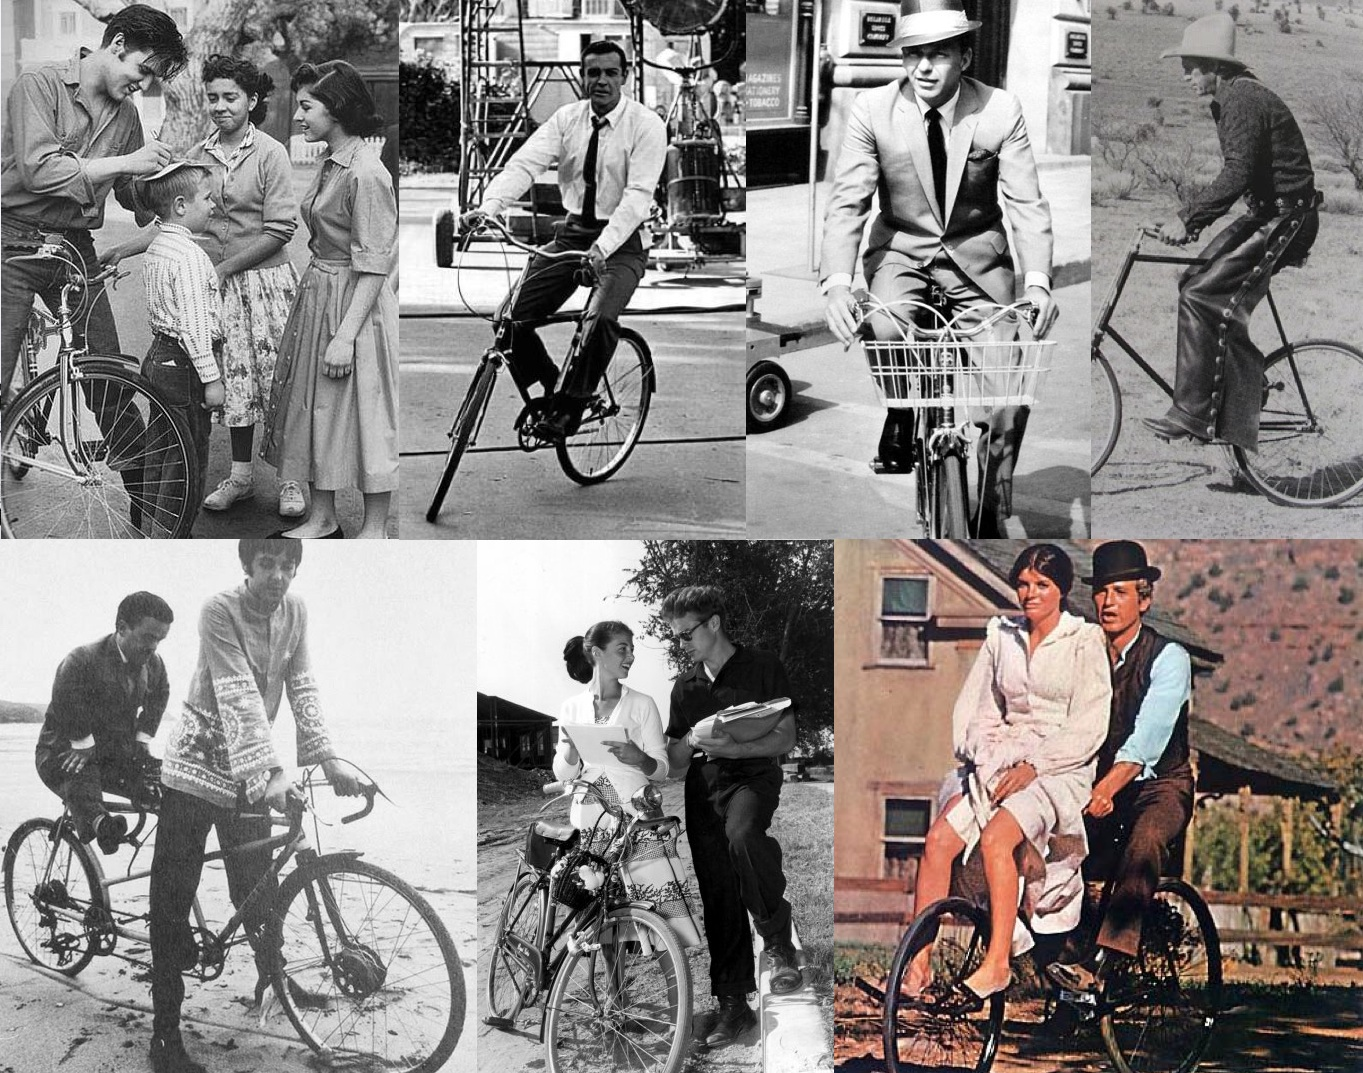 http://4.bp.blogspot.com/-COvAkEaCK0E/Tc28_9IGzoI/AAAAAAAACok/lZm1265wHNU/s1600/Vintage+dudes+bicycles.jpg